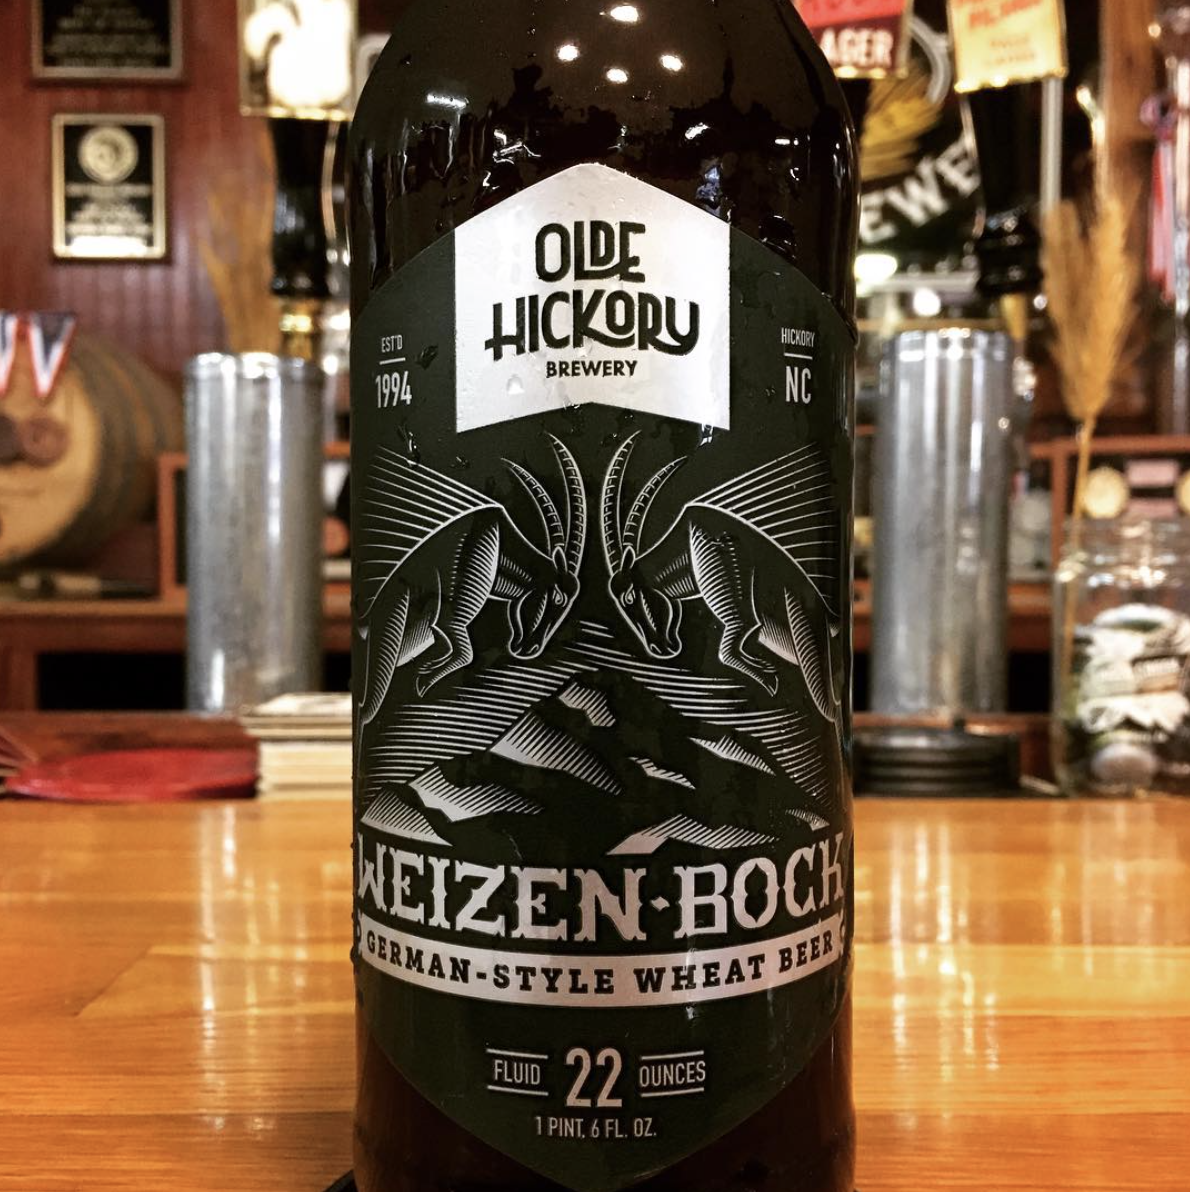 Photo Credit: Olde Hickory Brewery/Instagram